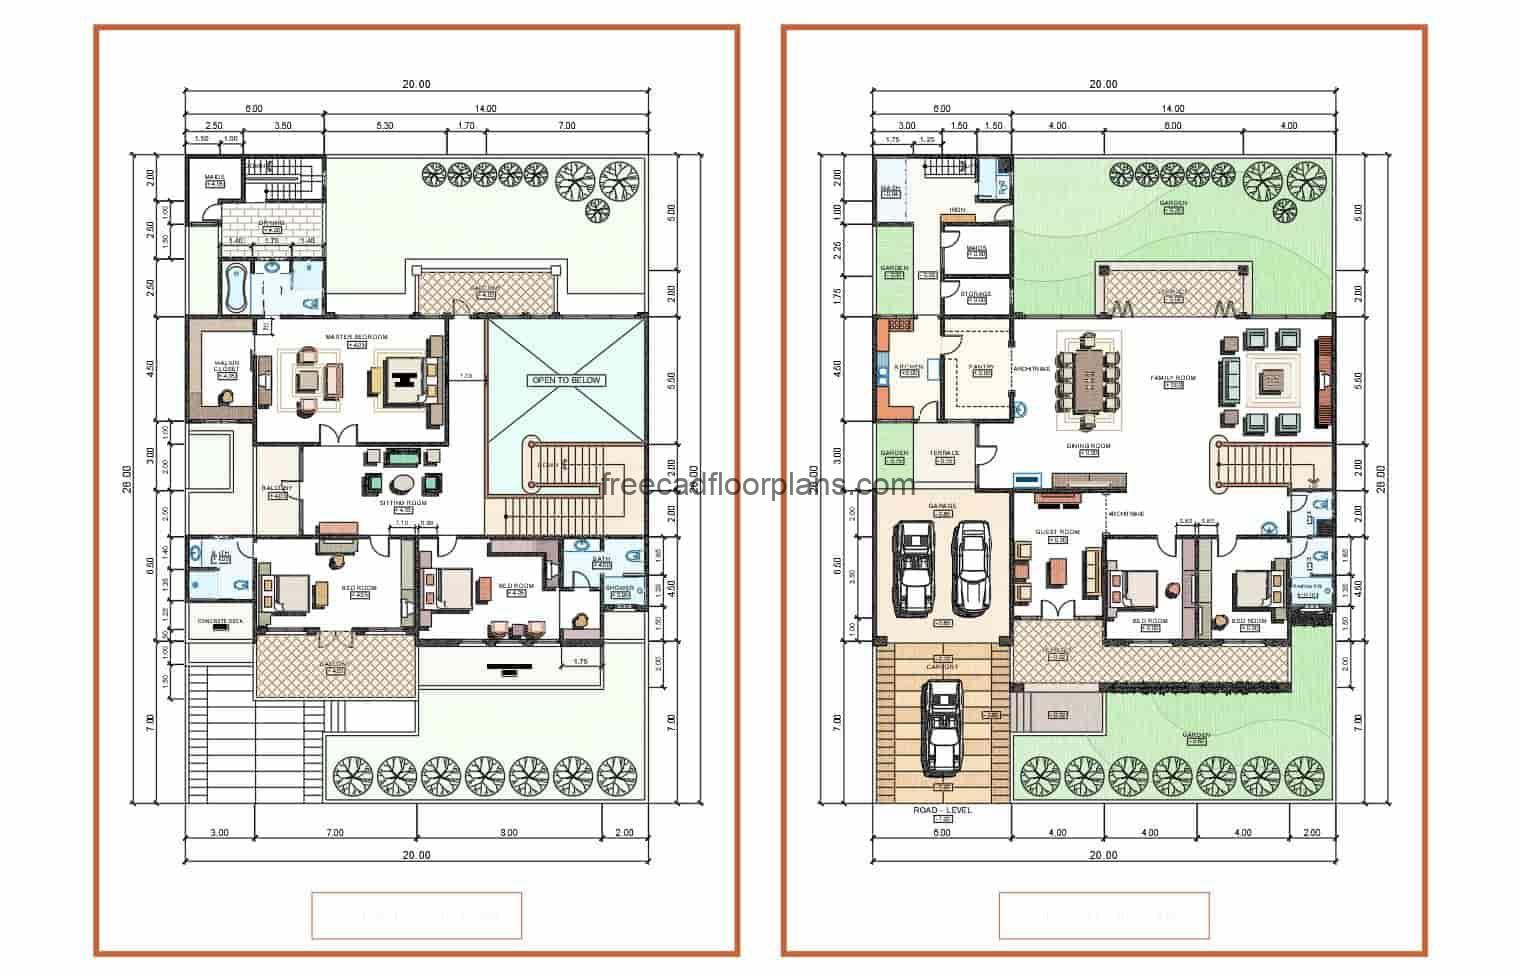 Plans of elegant residence of two levels drawn in autocad, the architectural plant is distributed in two levels for free download